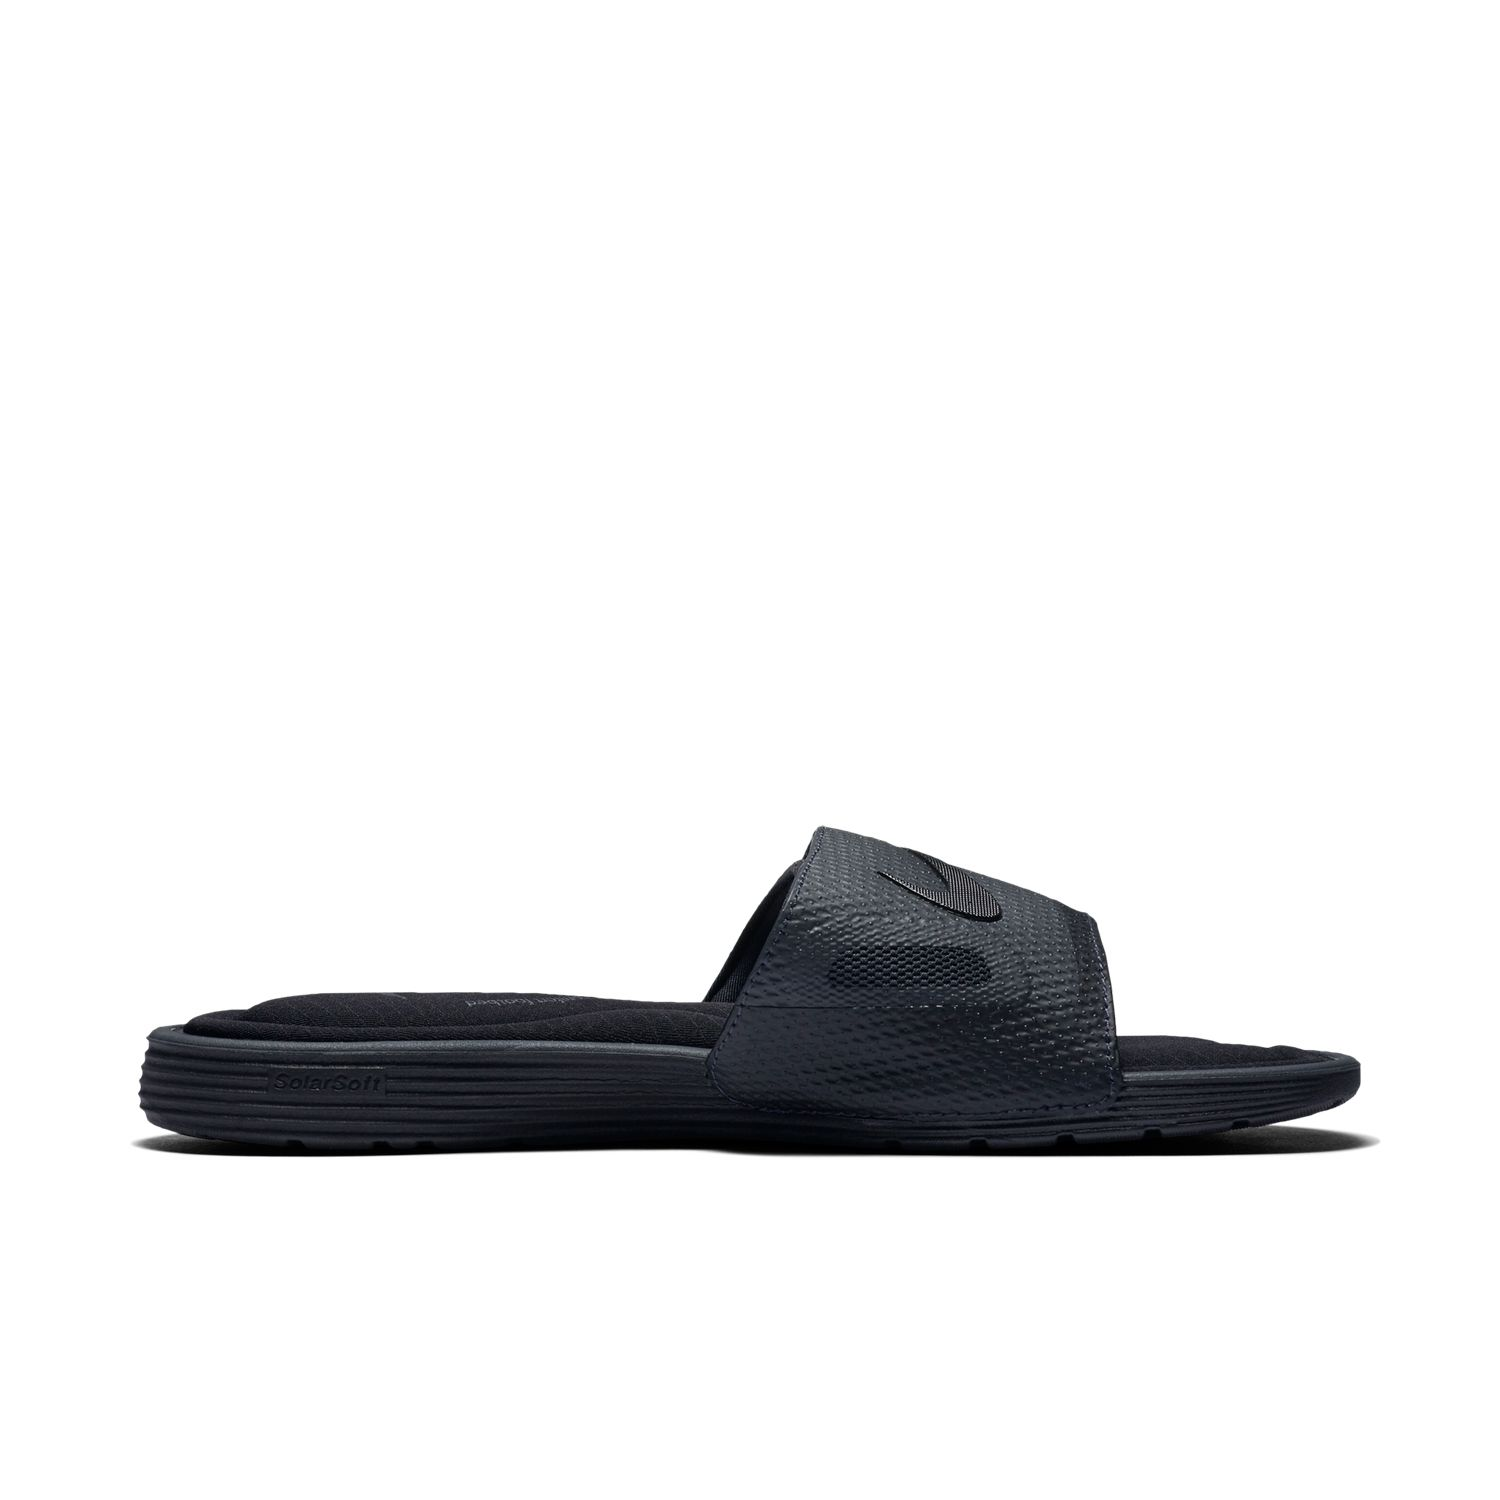 7f056cae1f81c7 Nike Sandals for Men